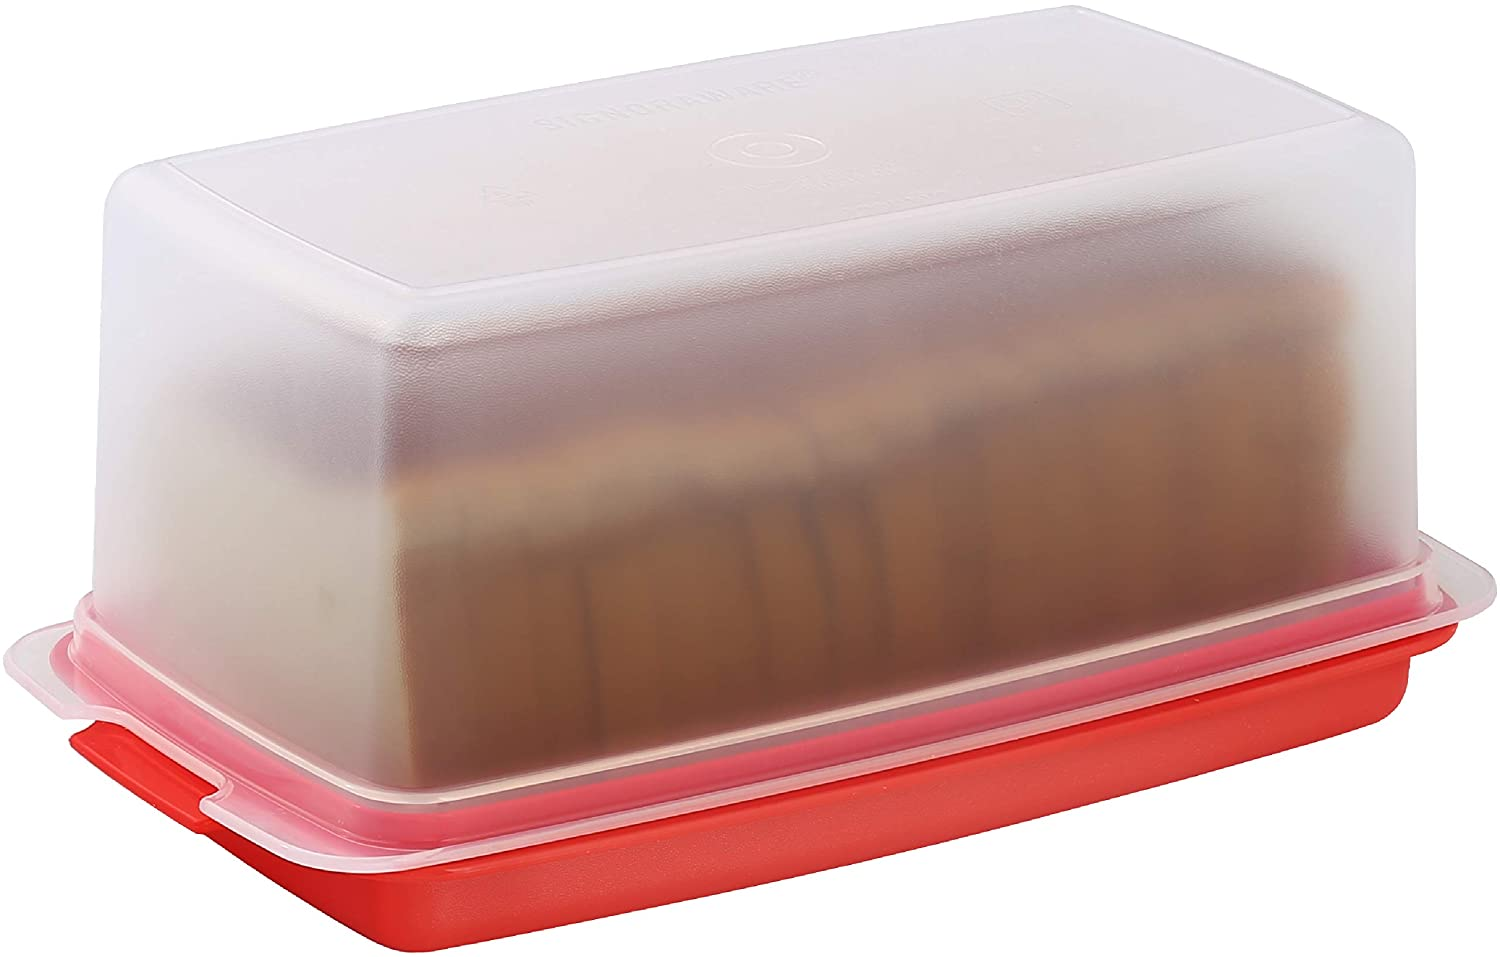 Bread Box -Dual Use Bread Holder/Airtight Plastic Food Storage Container for Dry or Fresh Foods -2 in 1 Bread Bin- Loaf Cake Keeper/Baked Goods -Keeps Bread Fresh- Red and Clear Cover - Signoraware